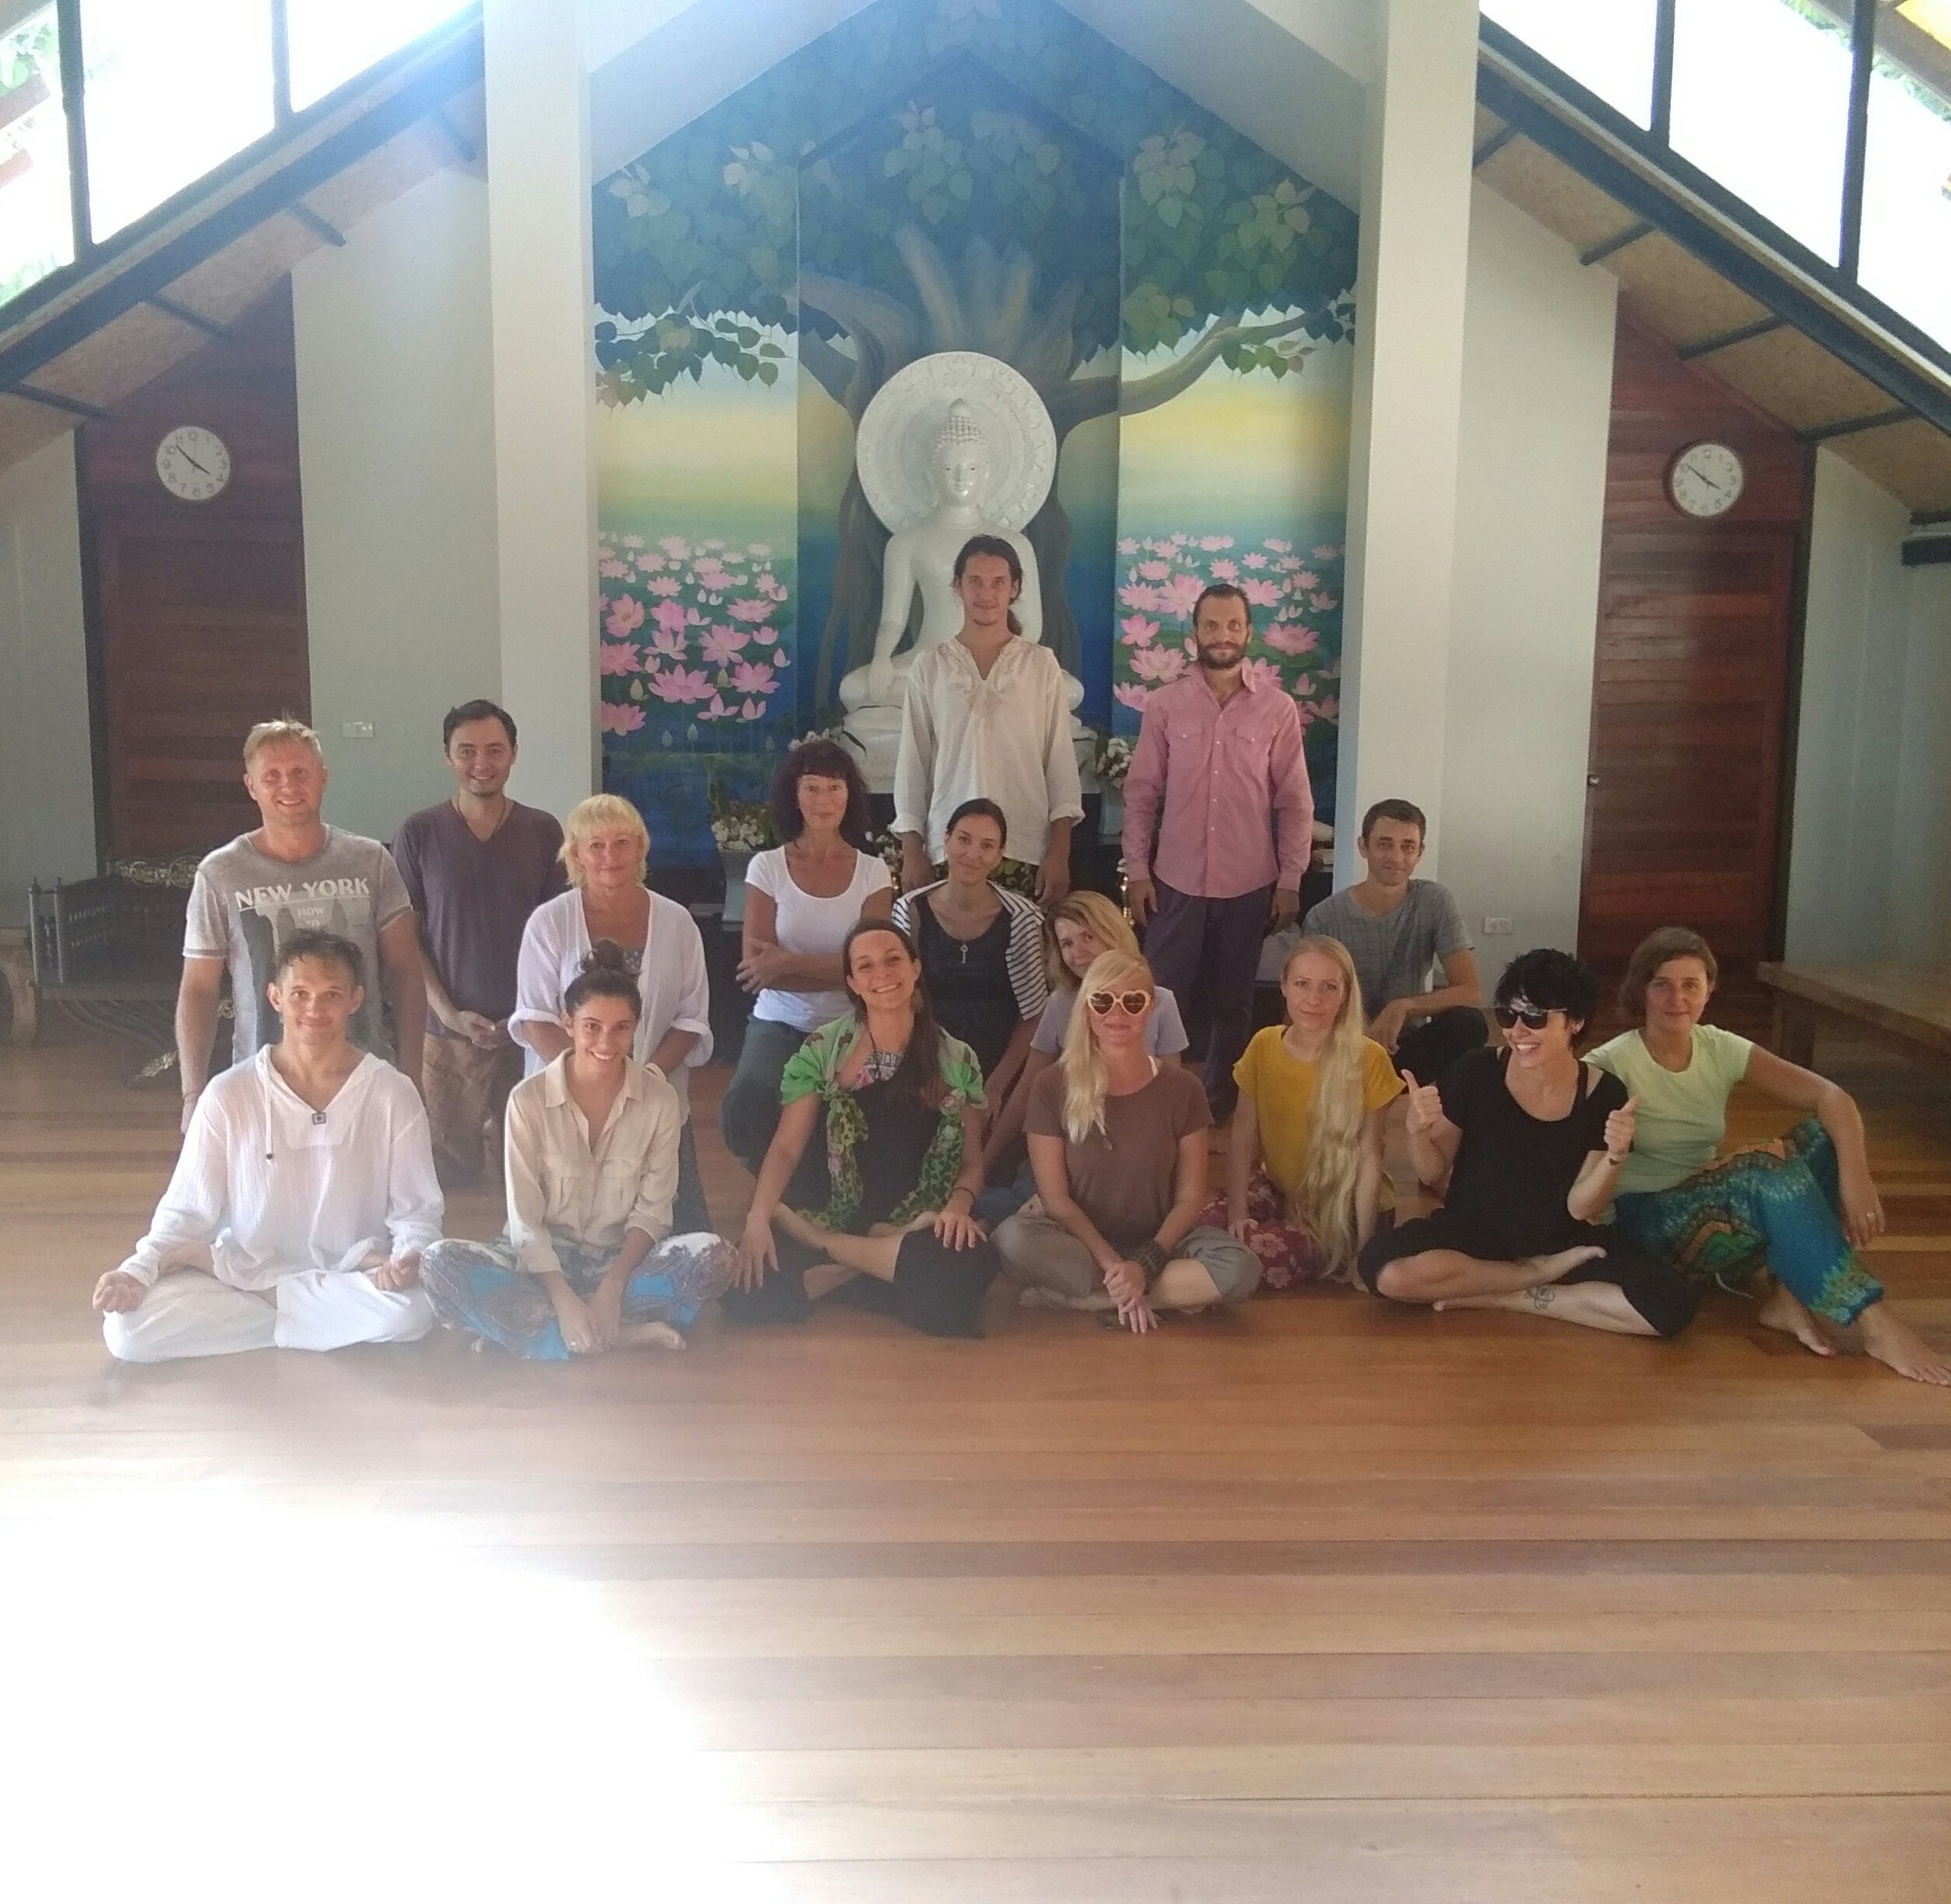 Yoga & Meditation Silent Retreat in Koh Samui - Irina was honored to be invited to teach in the well-known Buddhist Meditation center Dipabhāvan, in silent retreat, to a group of Russian students. More workshops and silent retreats are coming to Russia in June 2018, Workshops in Austria and a 'Yoga & Detox Reterat' in the Maldives happening November 2018. Check out more in the RETREAT section.Ask me more about upcoming retreats: irinabusurina@gmail.com